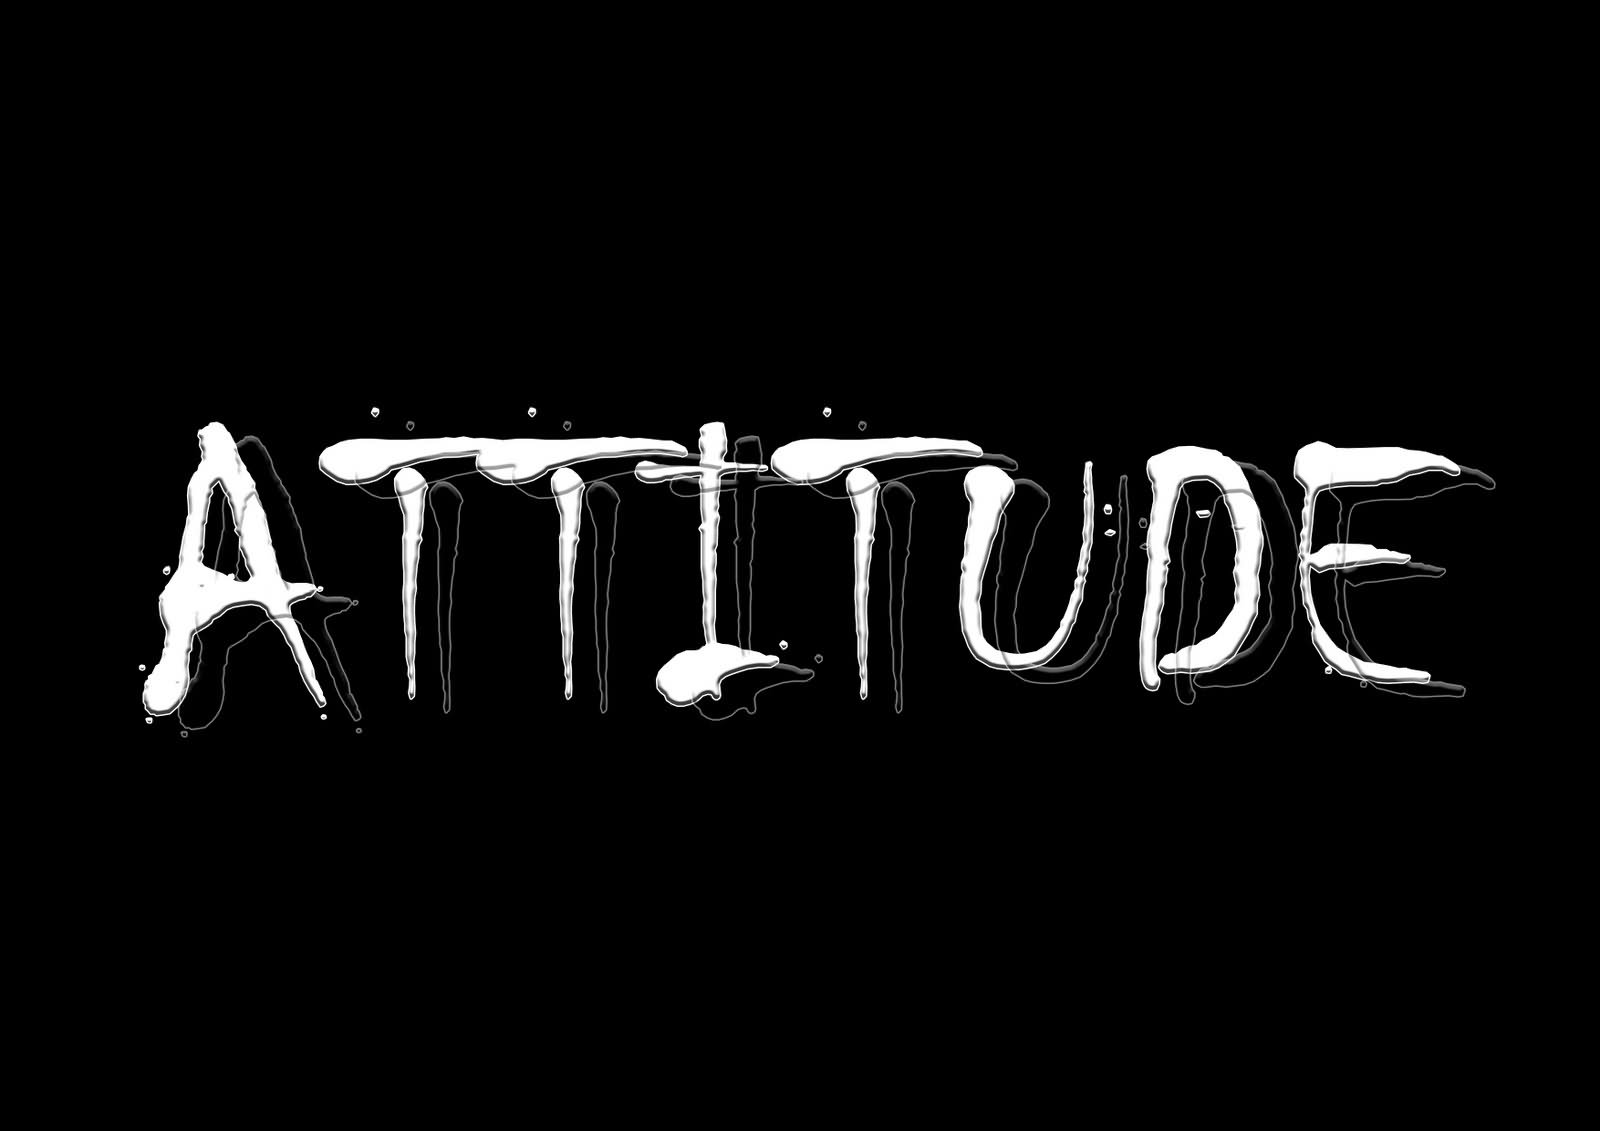 Attitude Wallpaper In Hindi Attitude Status For Fb Profile